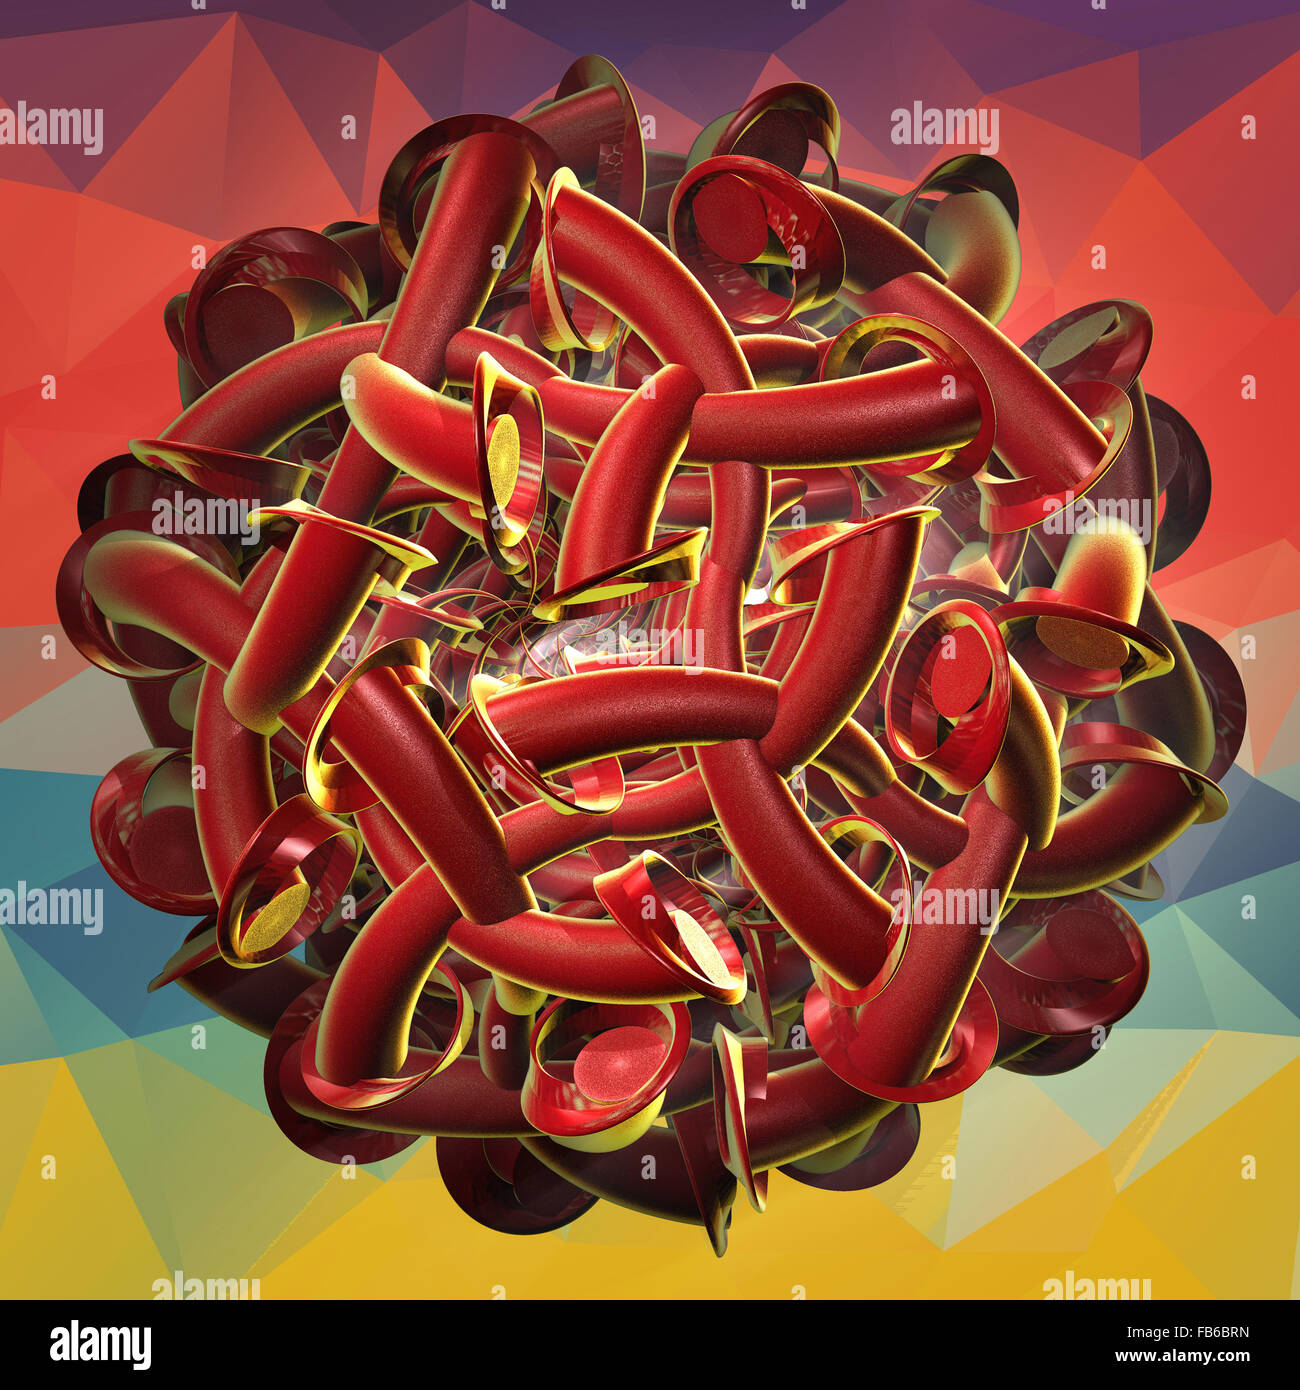 Entanglement of abstract organic 3D shapes on a geometric background. 3D digital art - Stock Image